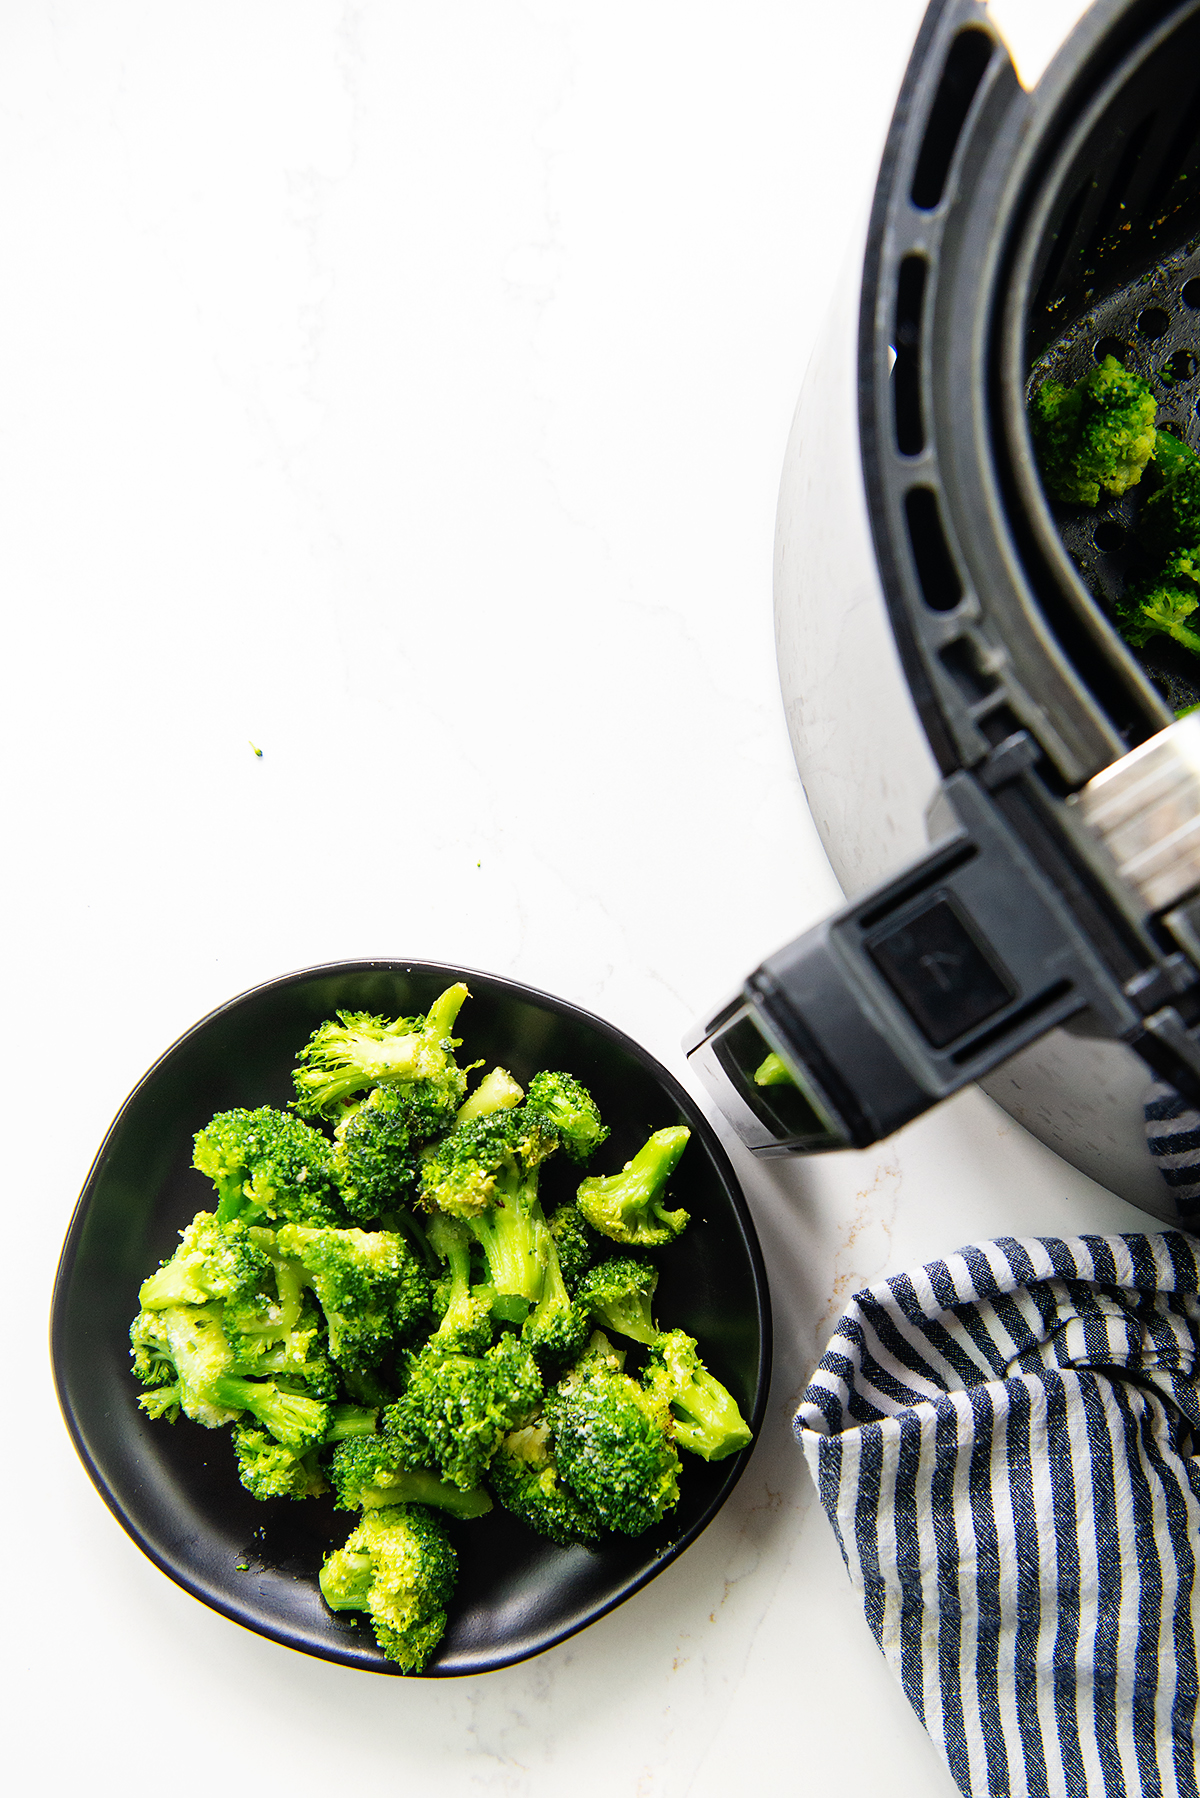 Overhead view of broccoli on a small black plate next to an air fryer